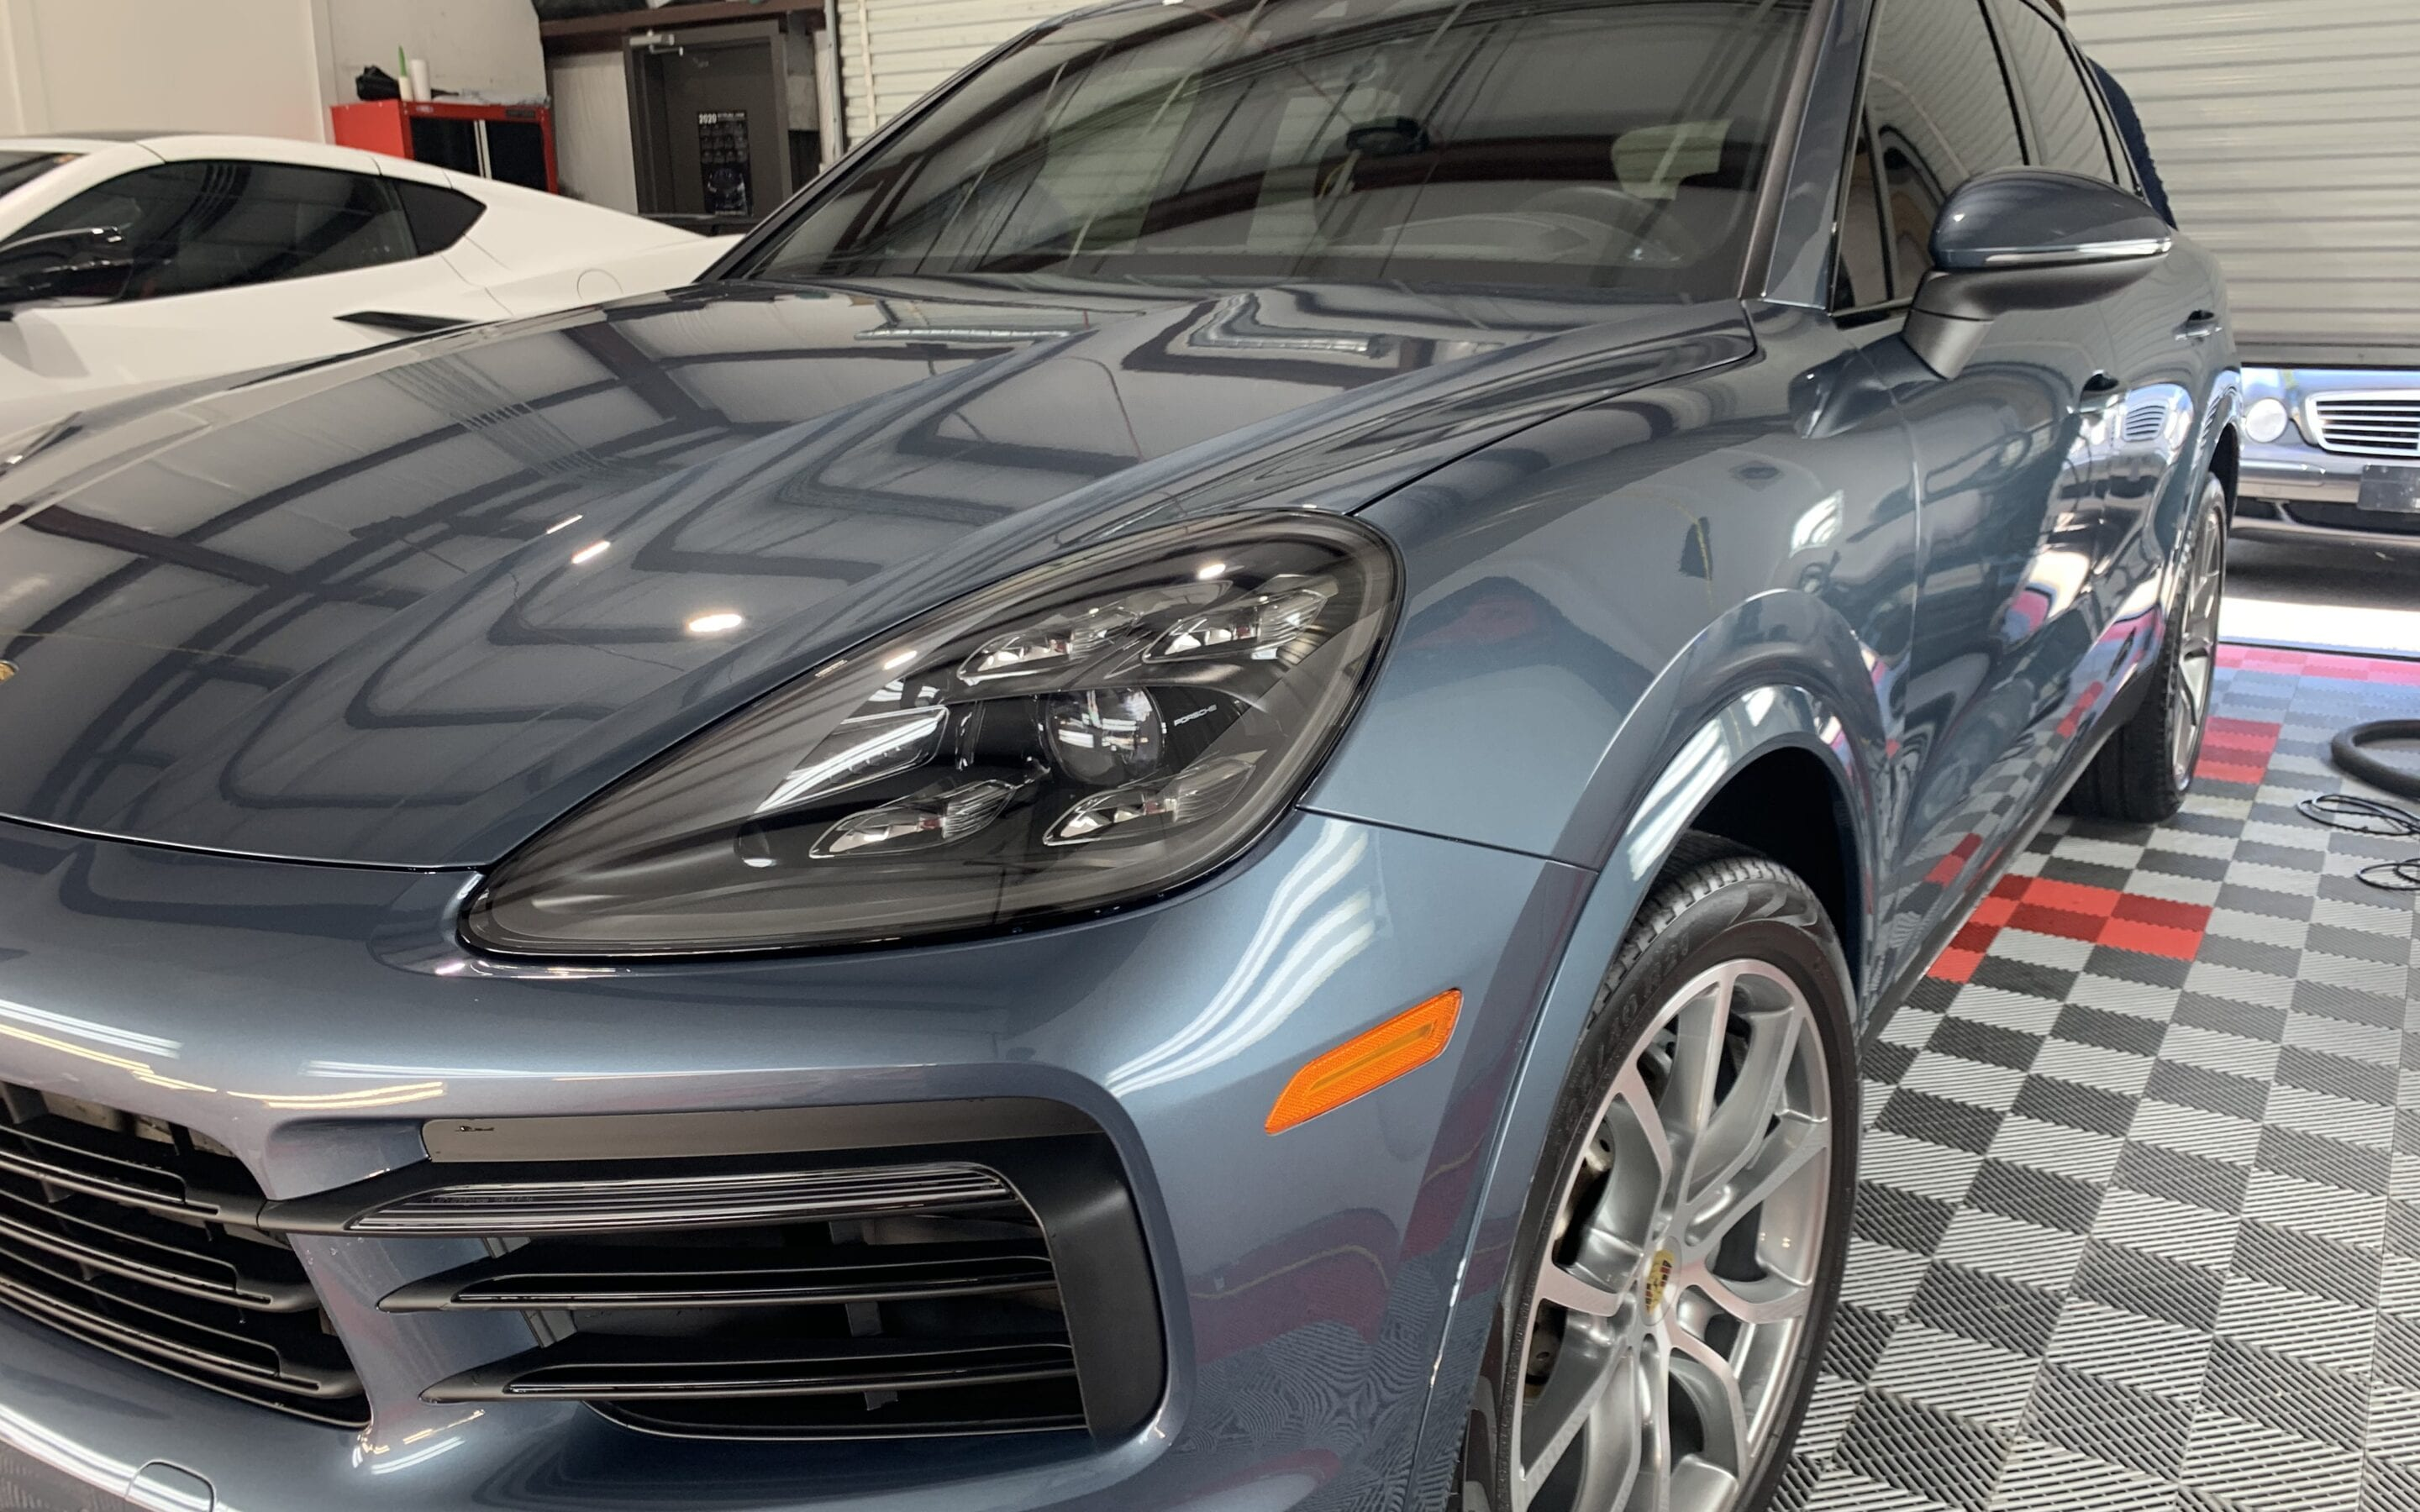 Premier Wash of a 2020 Porsche Cayenne